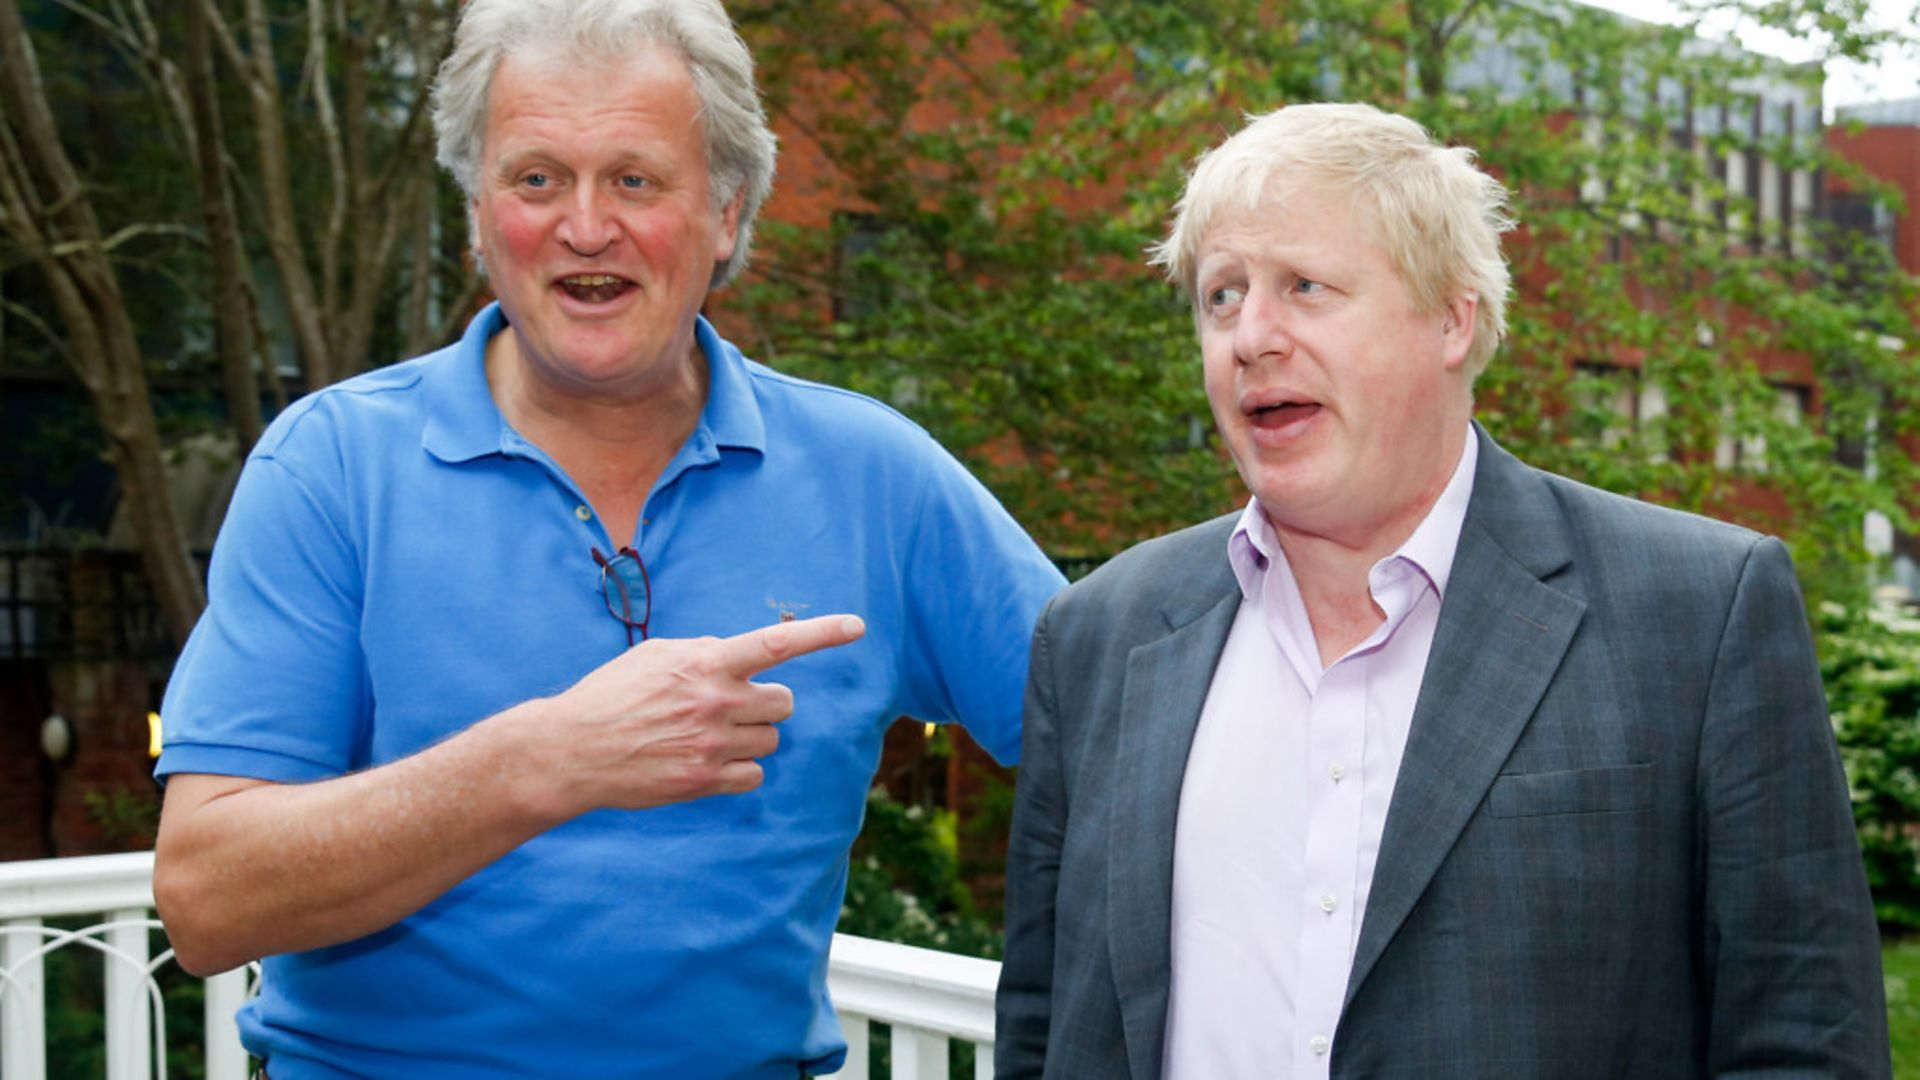 Tim Martin and Boris Johnson at a drinks reception during the EU referendum campaign - Credit: Bloomberg via Getty Images